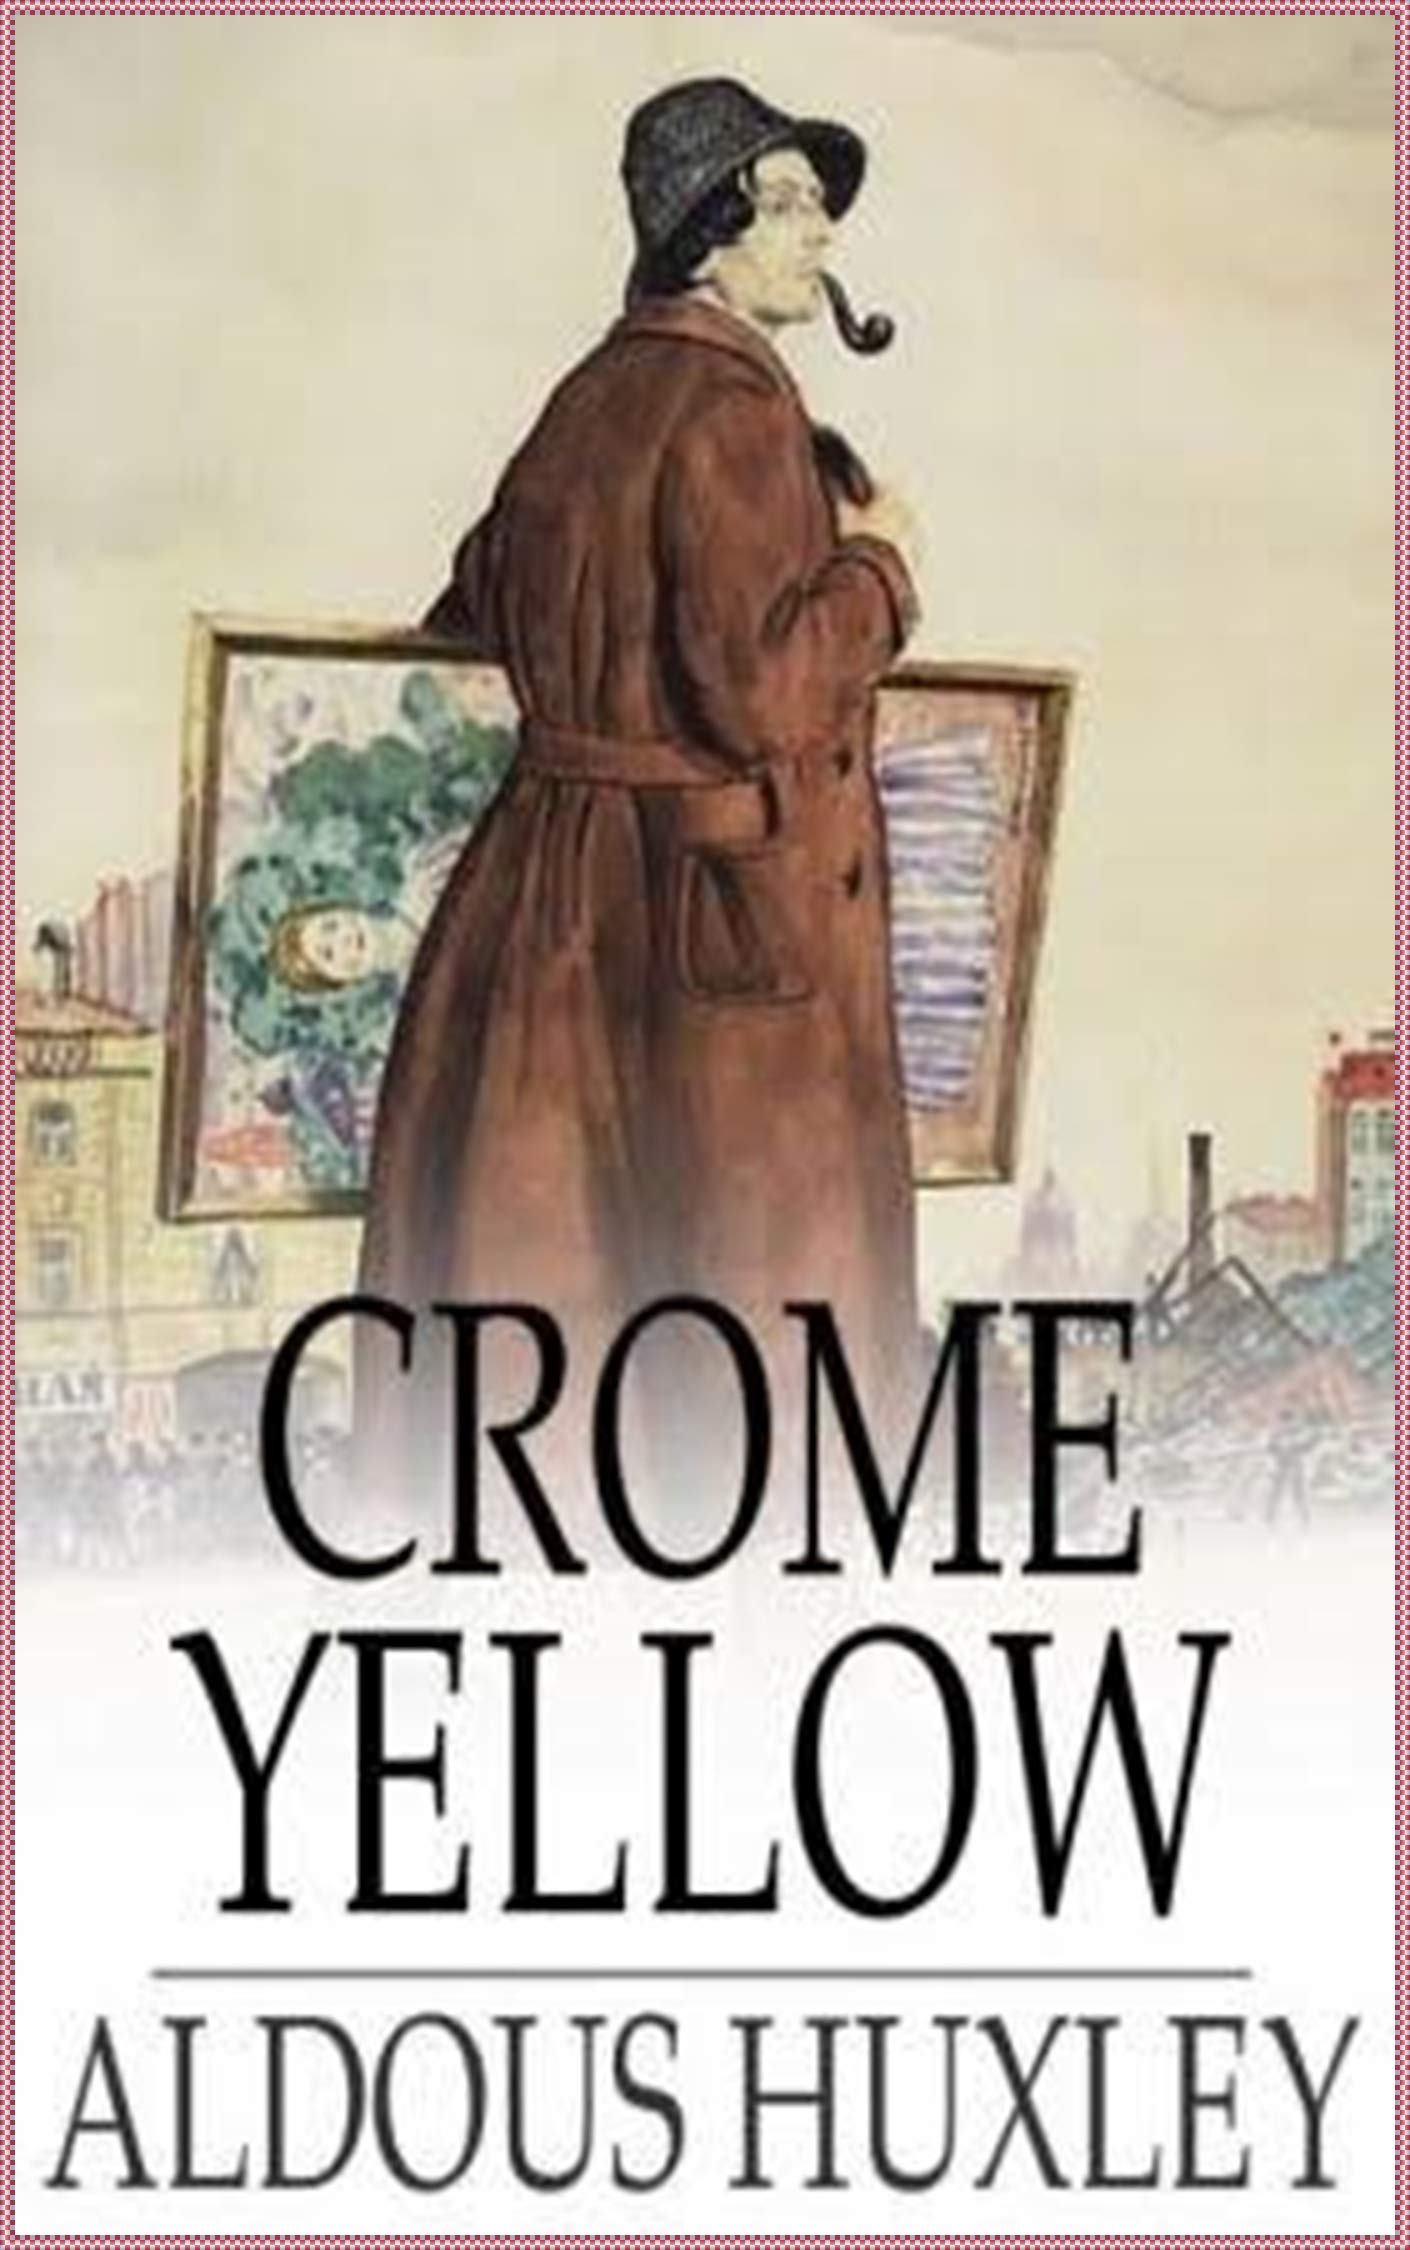 Crome Yellow [3rd edition norton] (Annotated)